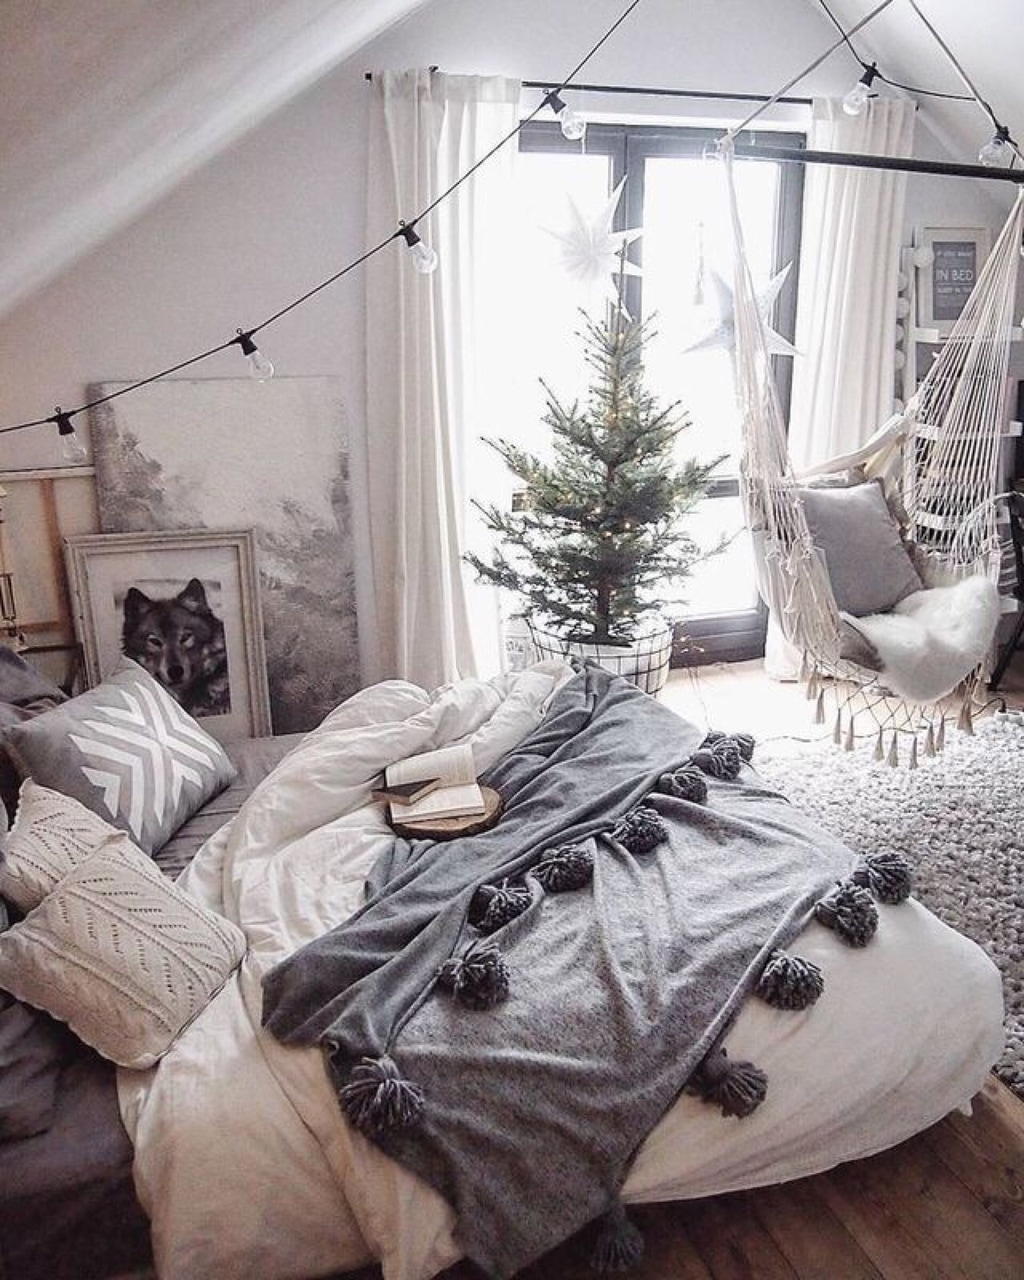 Aesthetic Tumblr Bedroom Discovered By 𝕓𝕒𝕓𝕚